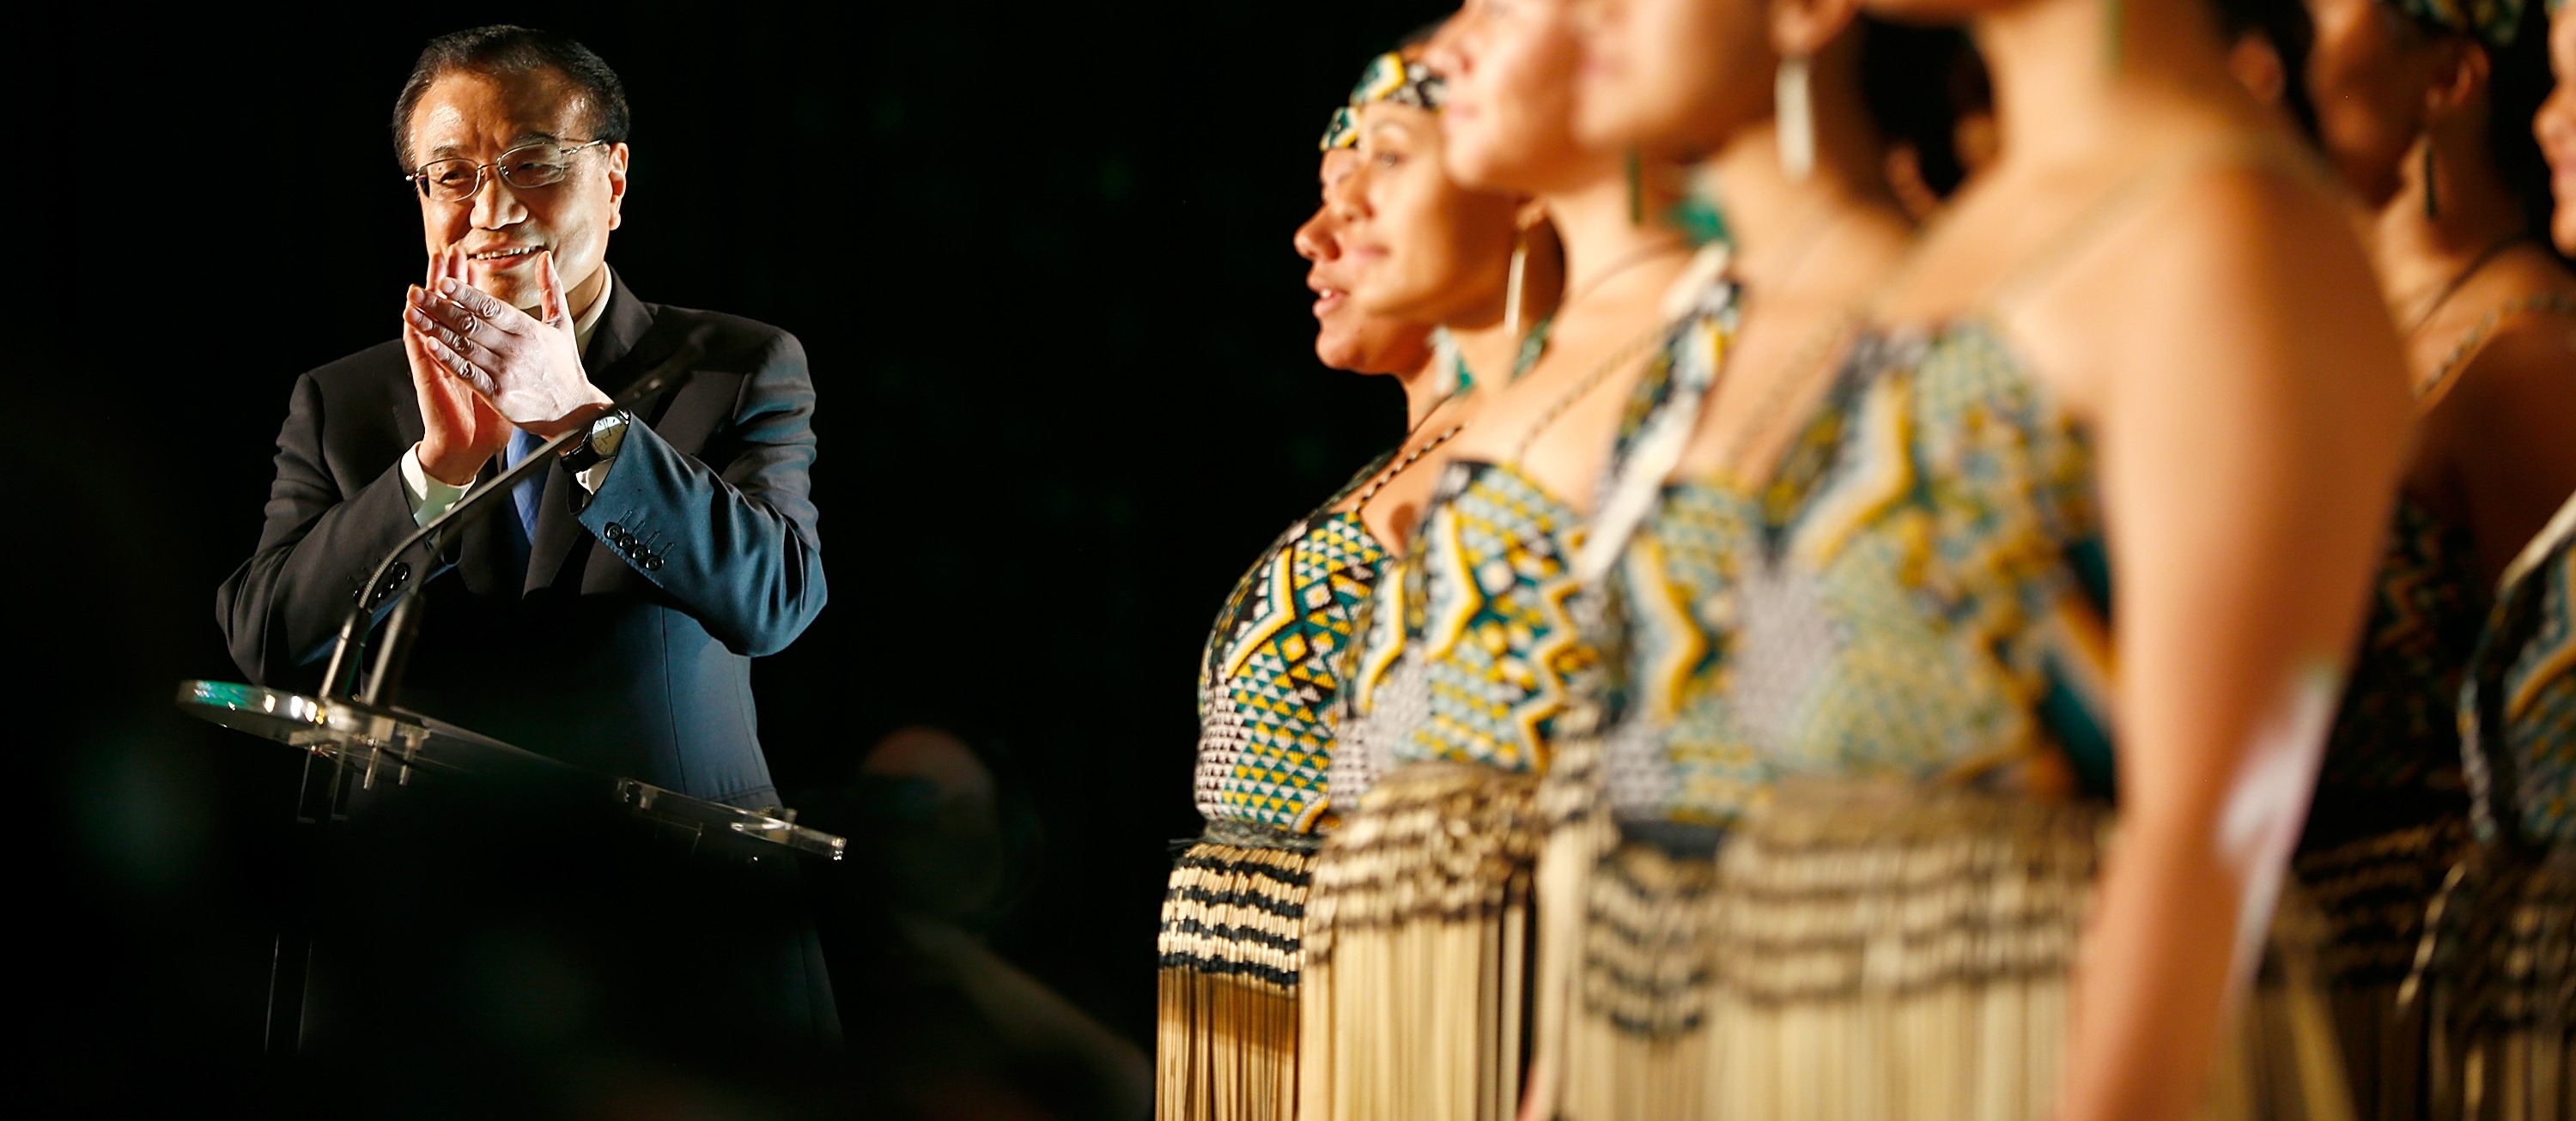 Chinese Premier Li Keqiang watches a maori cultural performance on 28 March 2017 in Auckland, New Zealand. (Getty/Phil Walter)